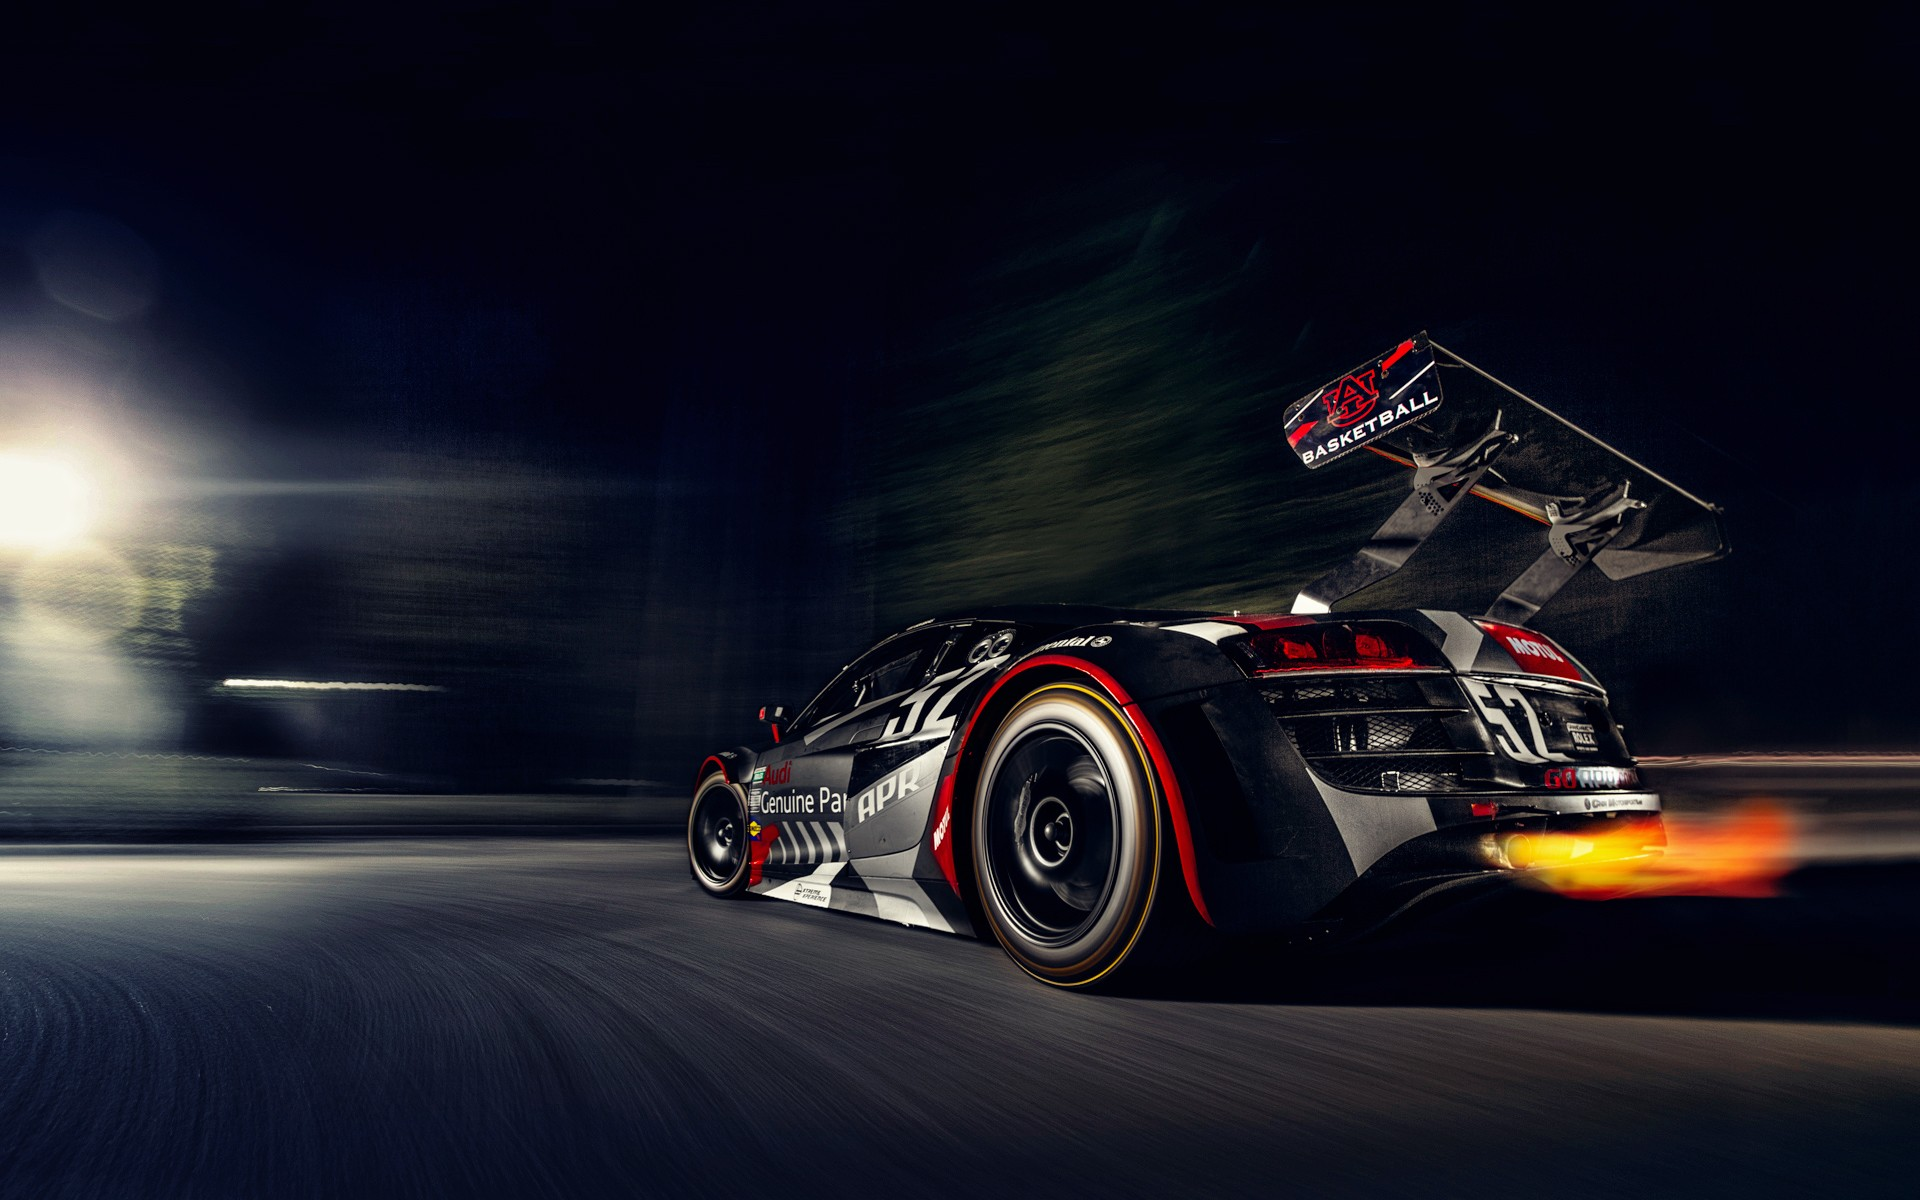 awesome race car wallpaper 44690